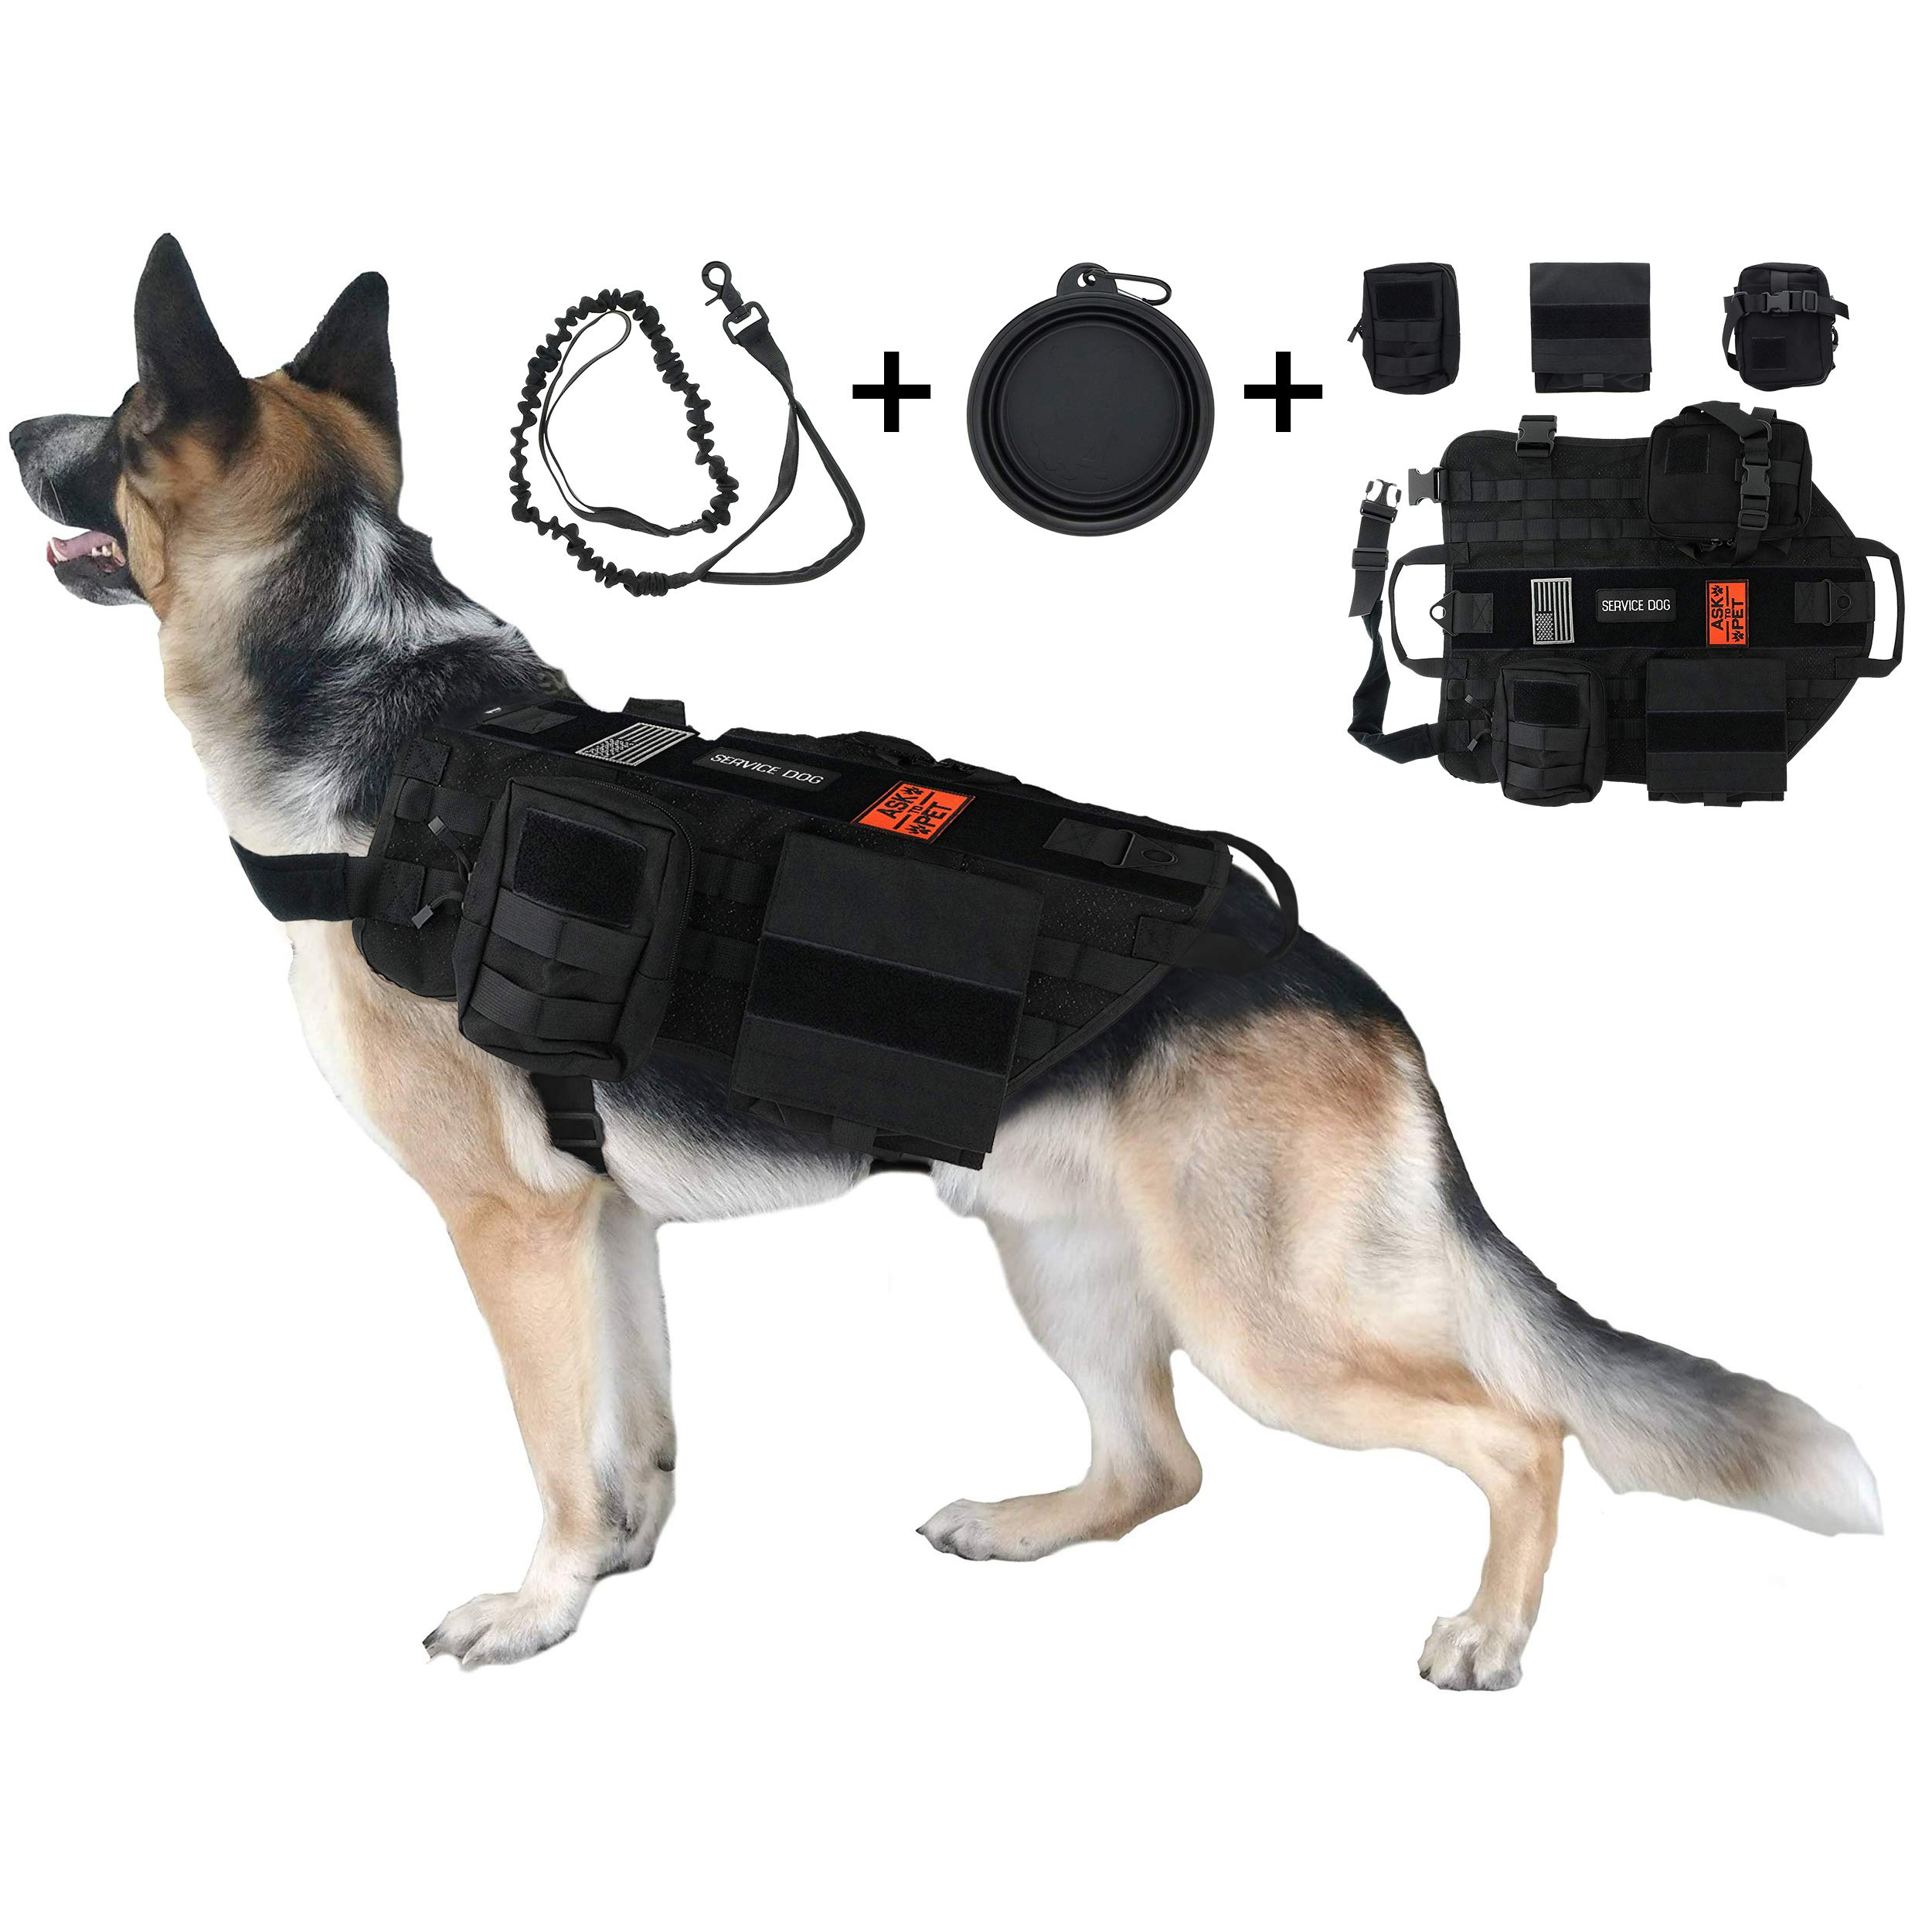 TCS Dog Tactical Harness (L) - 1000D Nylon Molle Vest Includes Leash | 3 Pouches | 3 Patches | Collapsible BPA Free Bowl by TCS